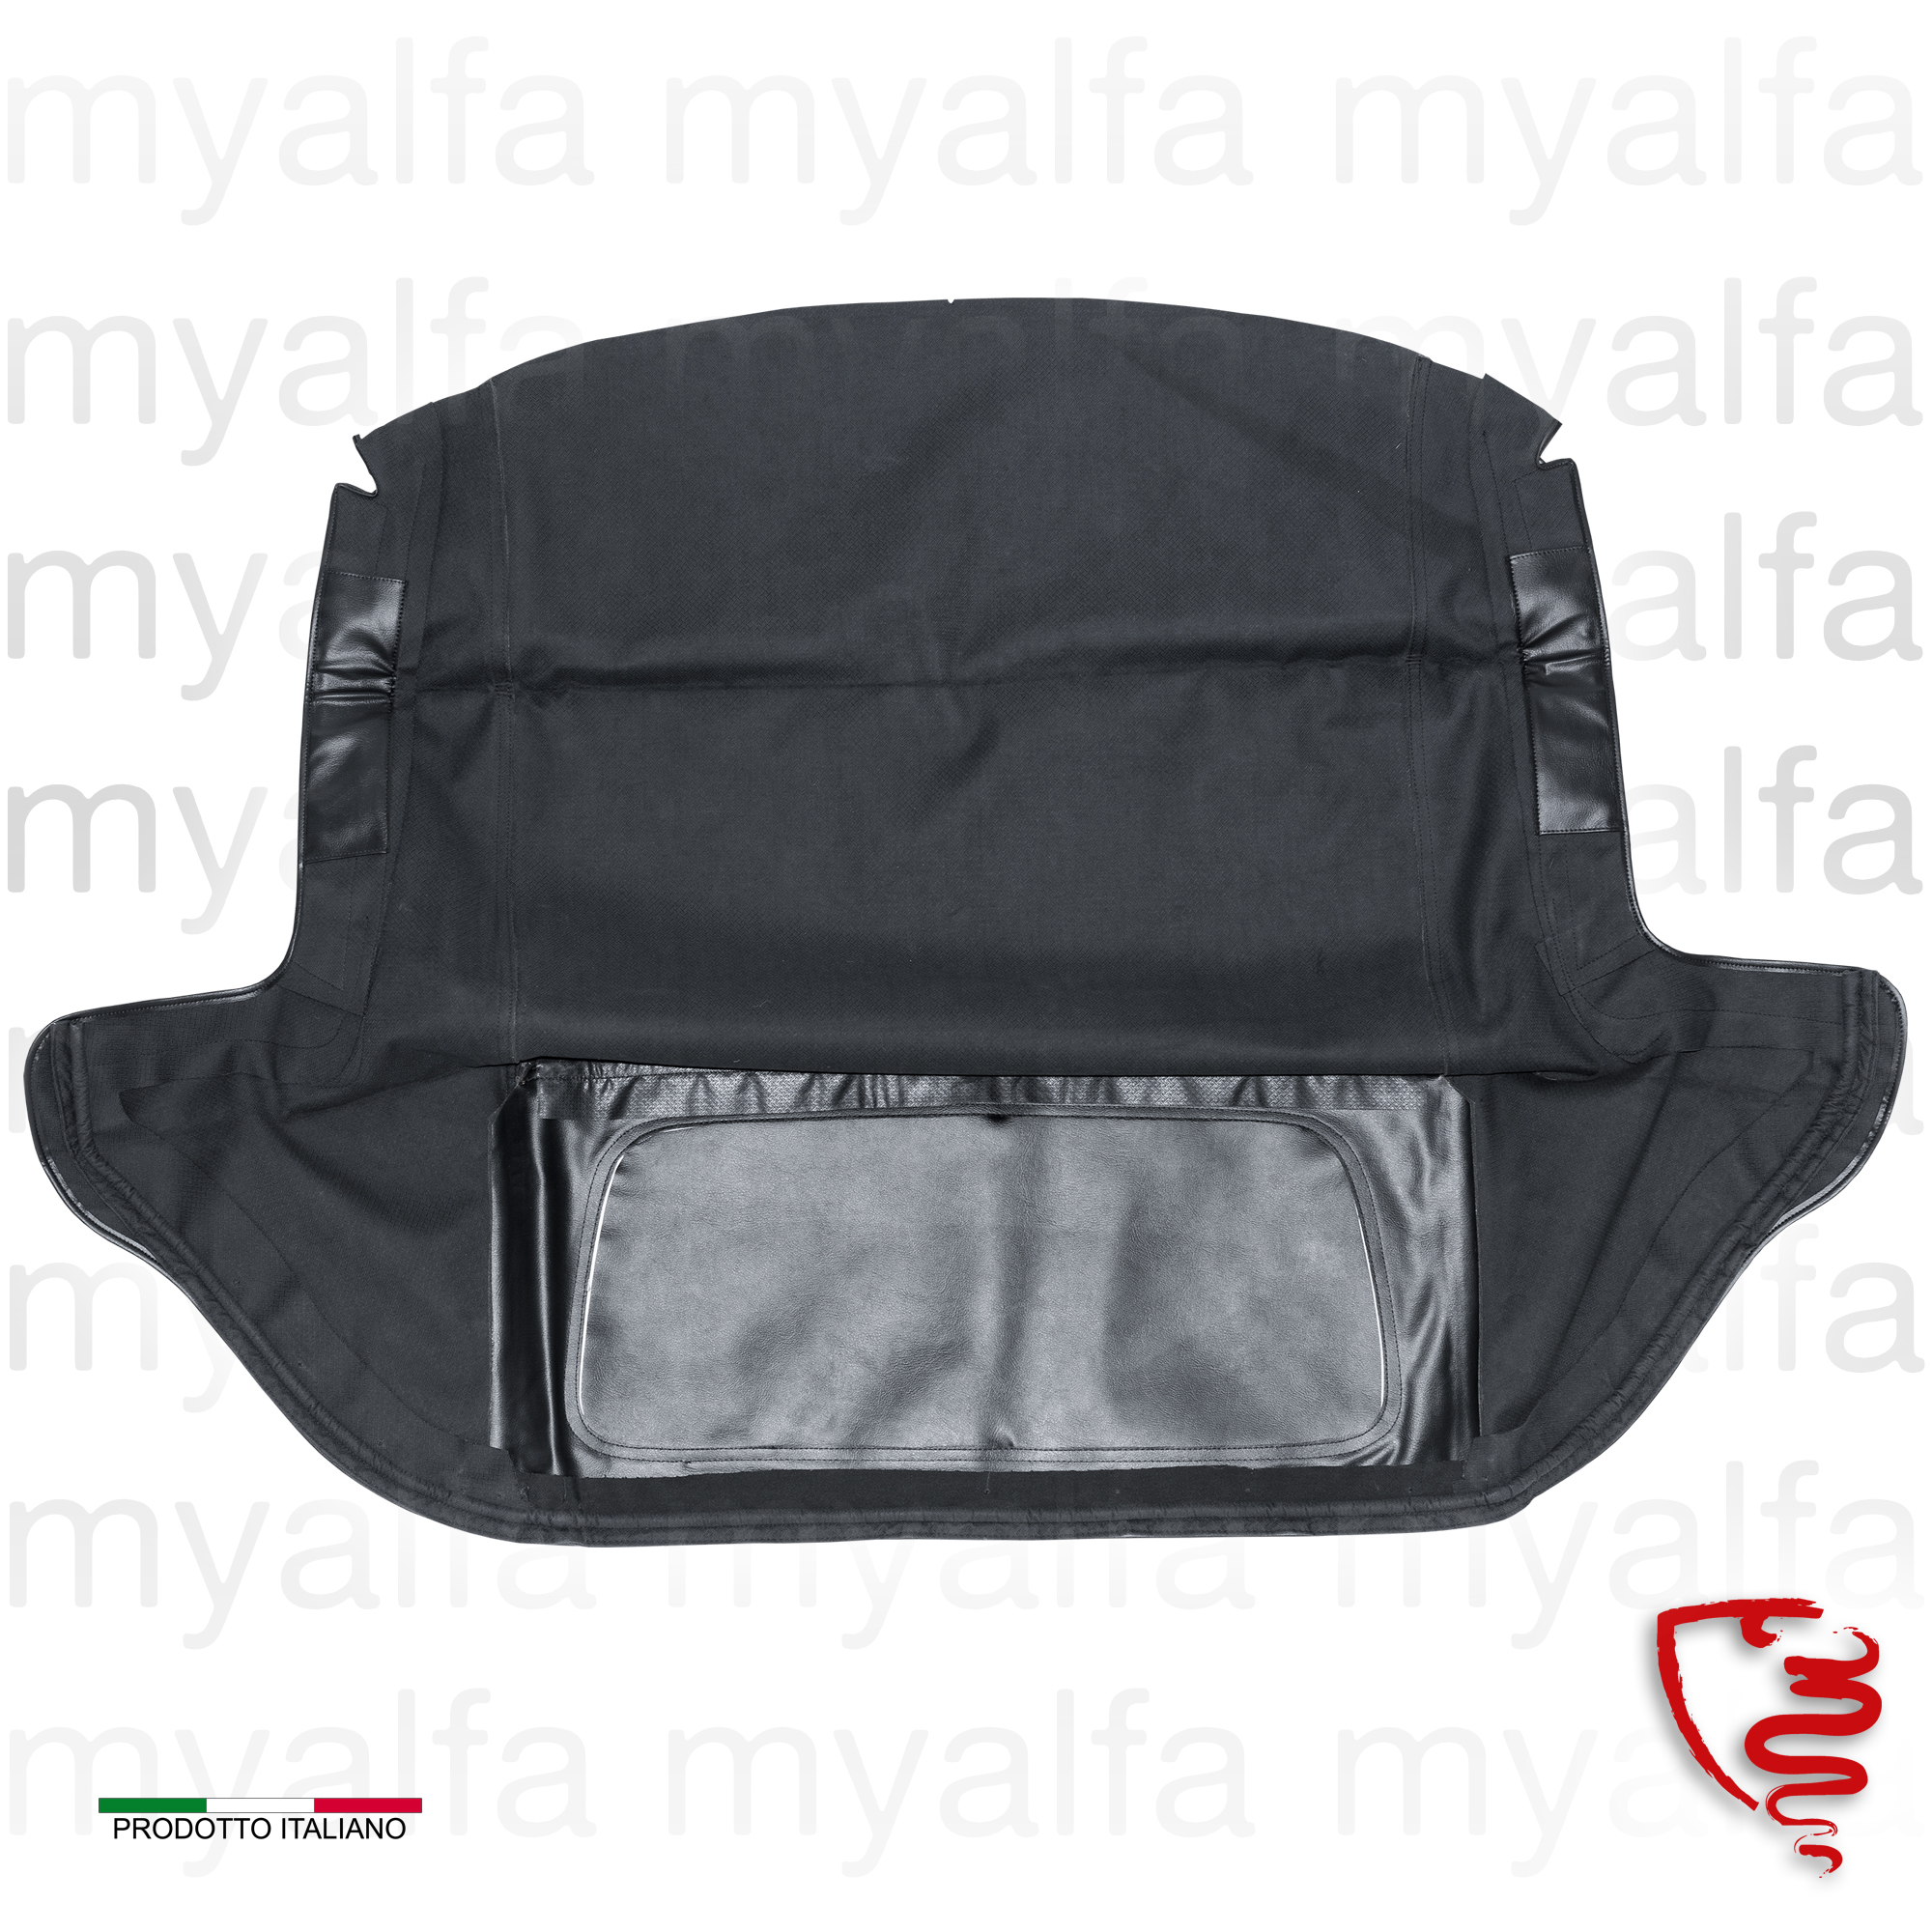 Cowling spider 101 - Black for 750/101, Spider, Body parts, Top Covers, Convertible top